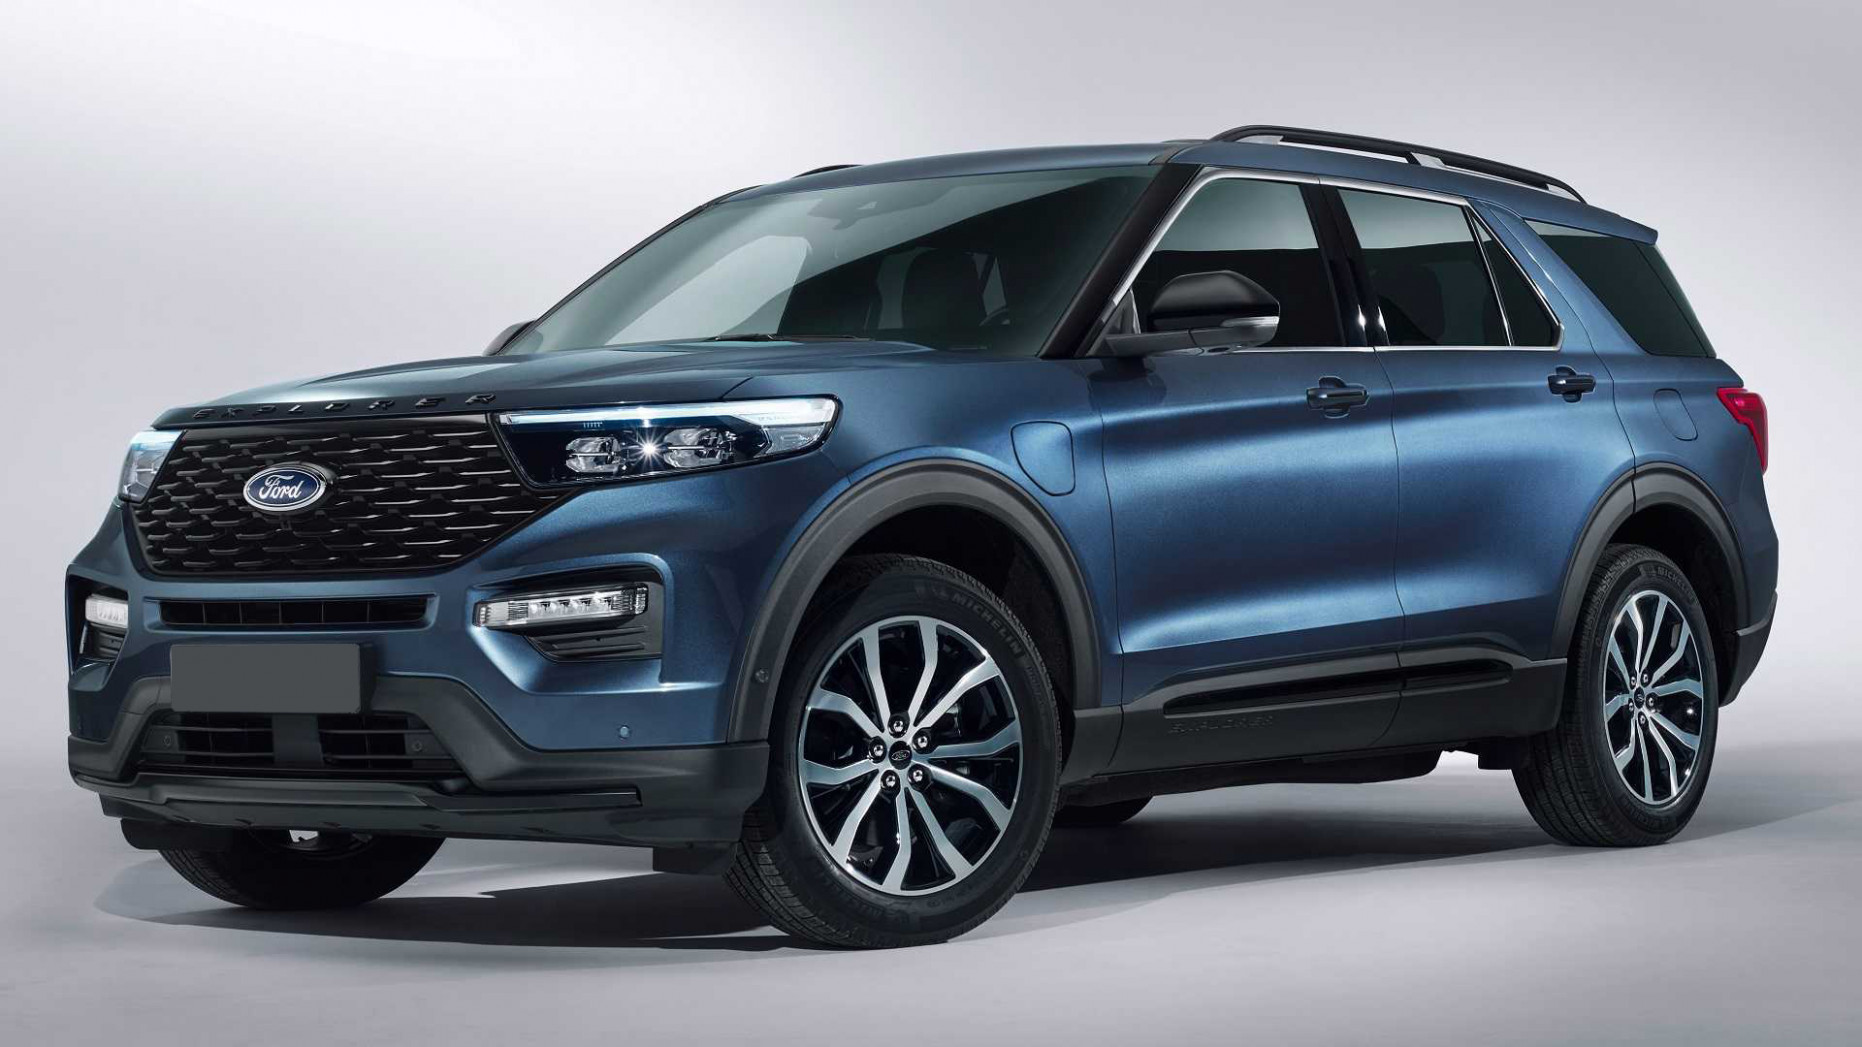 Price and Release date When Does The 2022 Ford Explorer Come Out